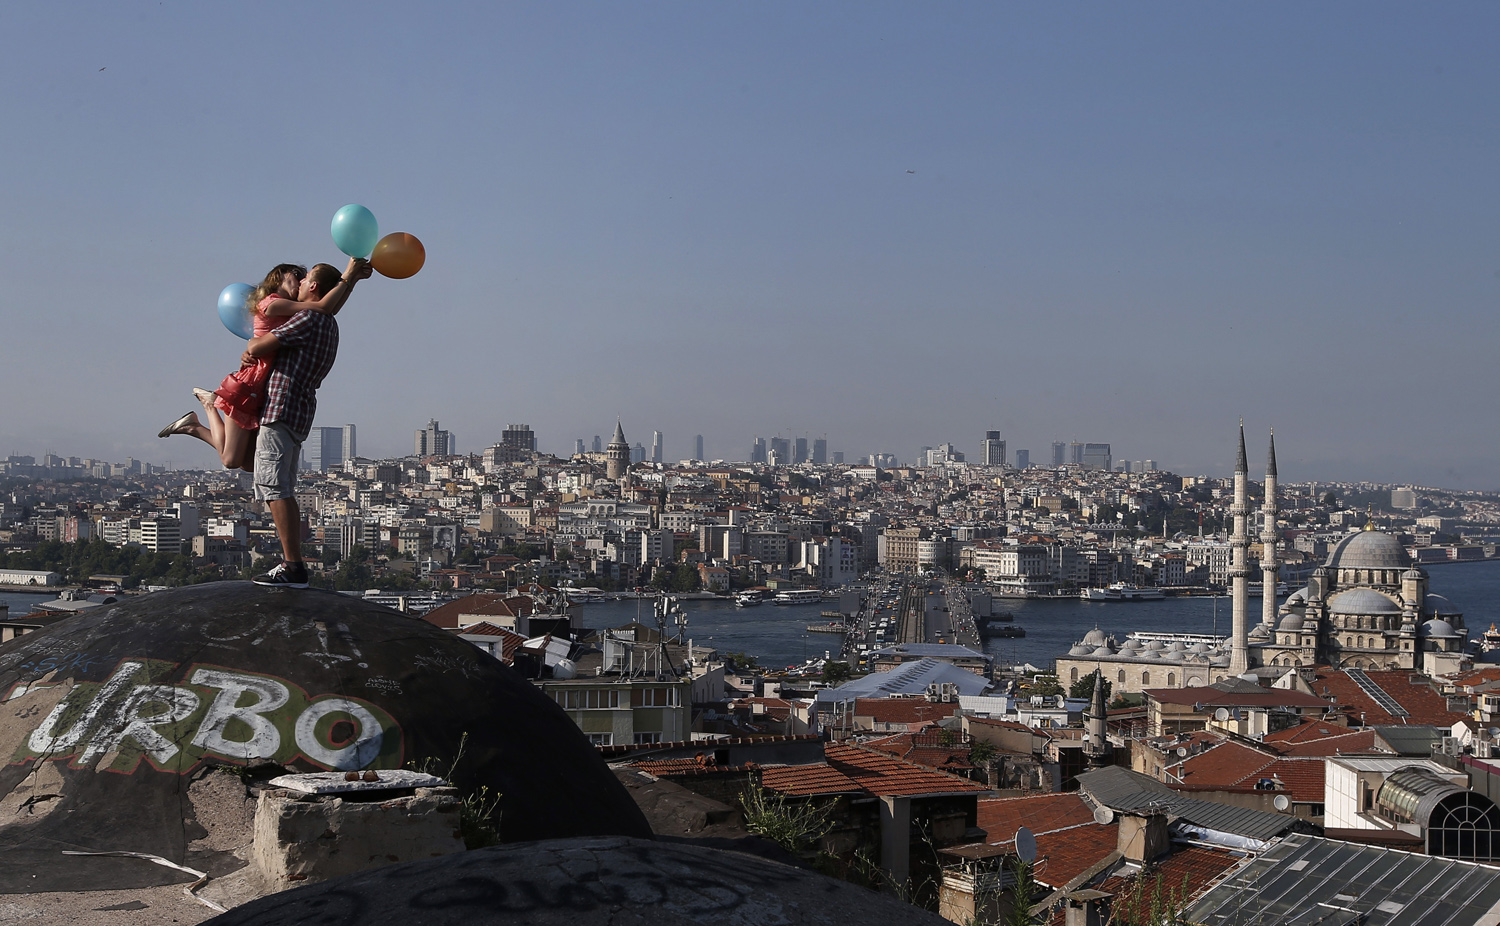 09 Jul 2015, Istanbul, Turkey --- A couple kiss each other as they pose for a friend taking photographs, backdropped by Istanbul's skyline, Thursday, July 9, 2015. Istanbul is a thoroughly modern place, but it traces its roots back to 660 B.C. It's the former seat of the opulent Byzantine and Ottoman empires and is divided into European and Asian sides by the Bosphorus Strait, offering a wealth of history and stunning scenery. (AP Photo/Emrah Gurel) --- Image by © Emrah Gurel/AP/Corbis